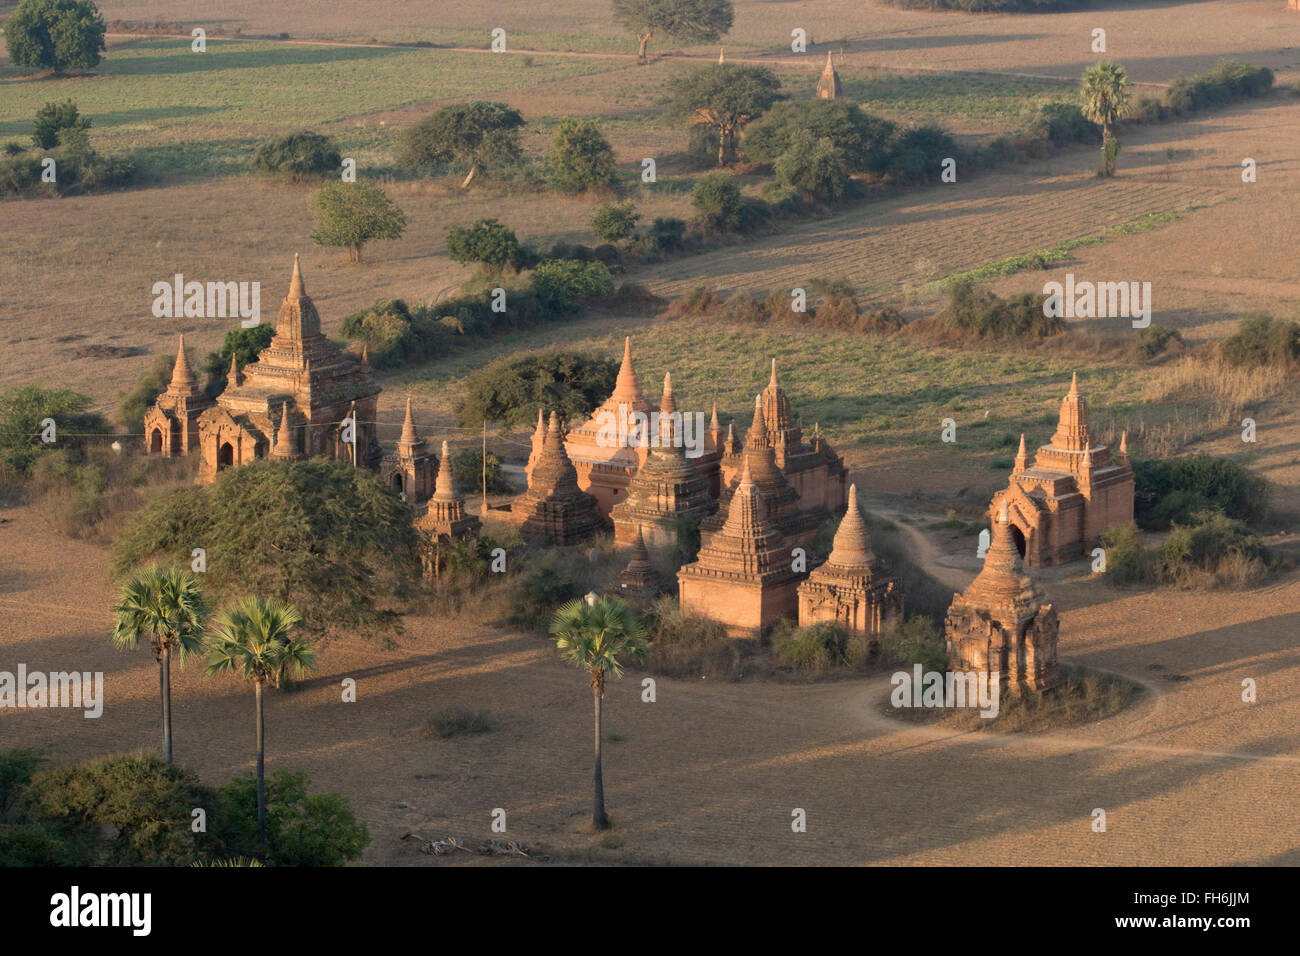 Thousands of smaller shrines and pagodas cover the Archeological Zone Bagan,Myanmar - Stock Image